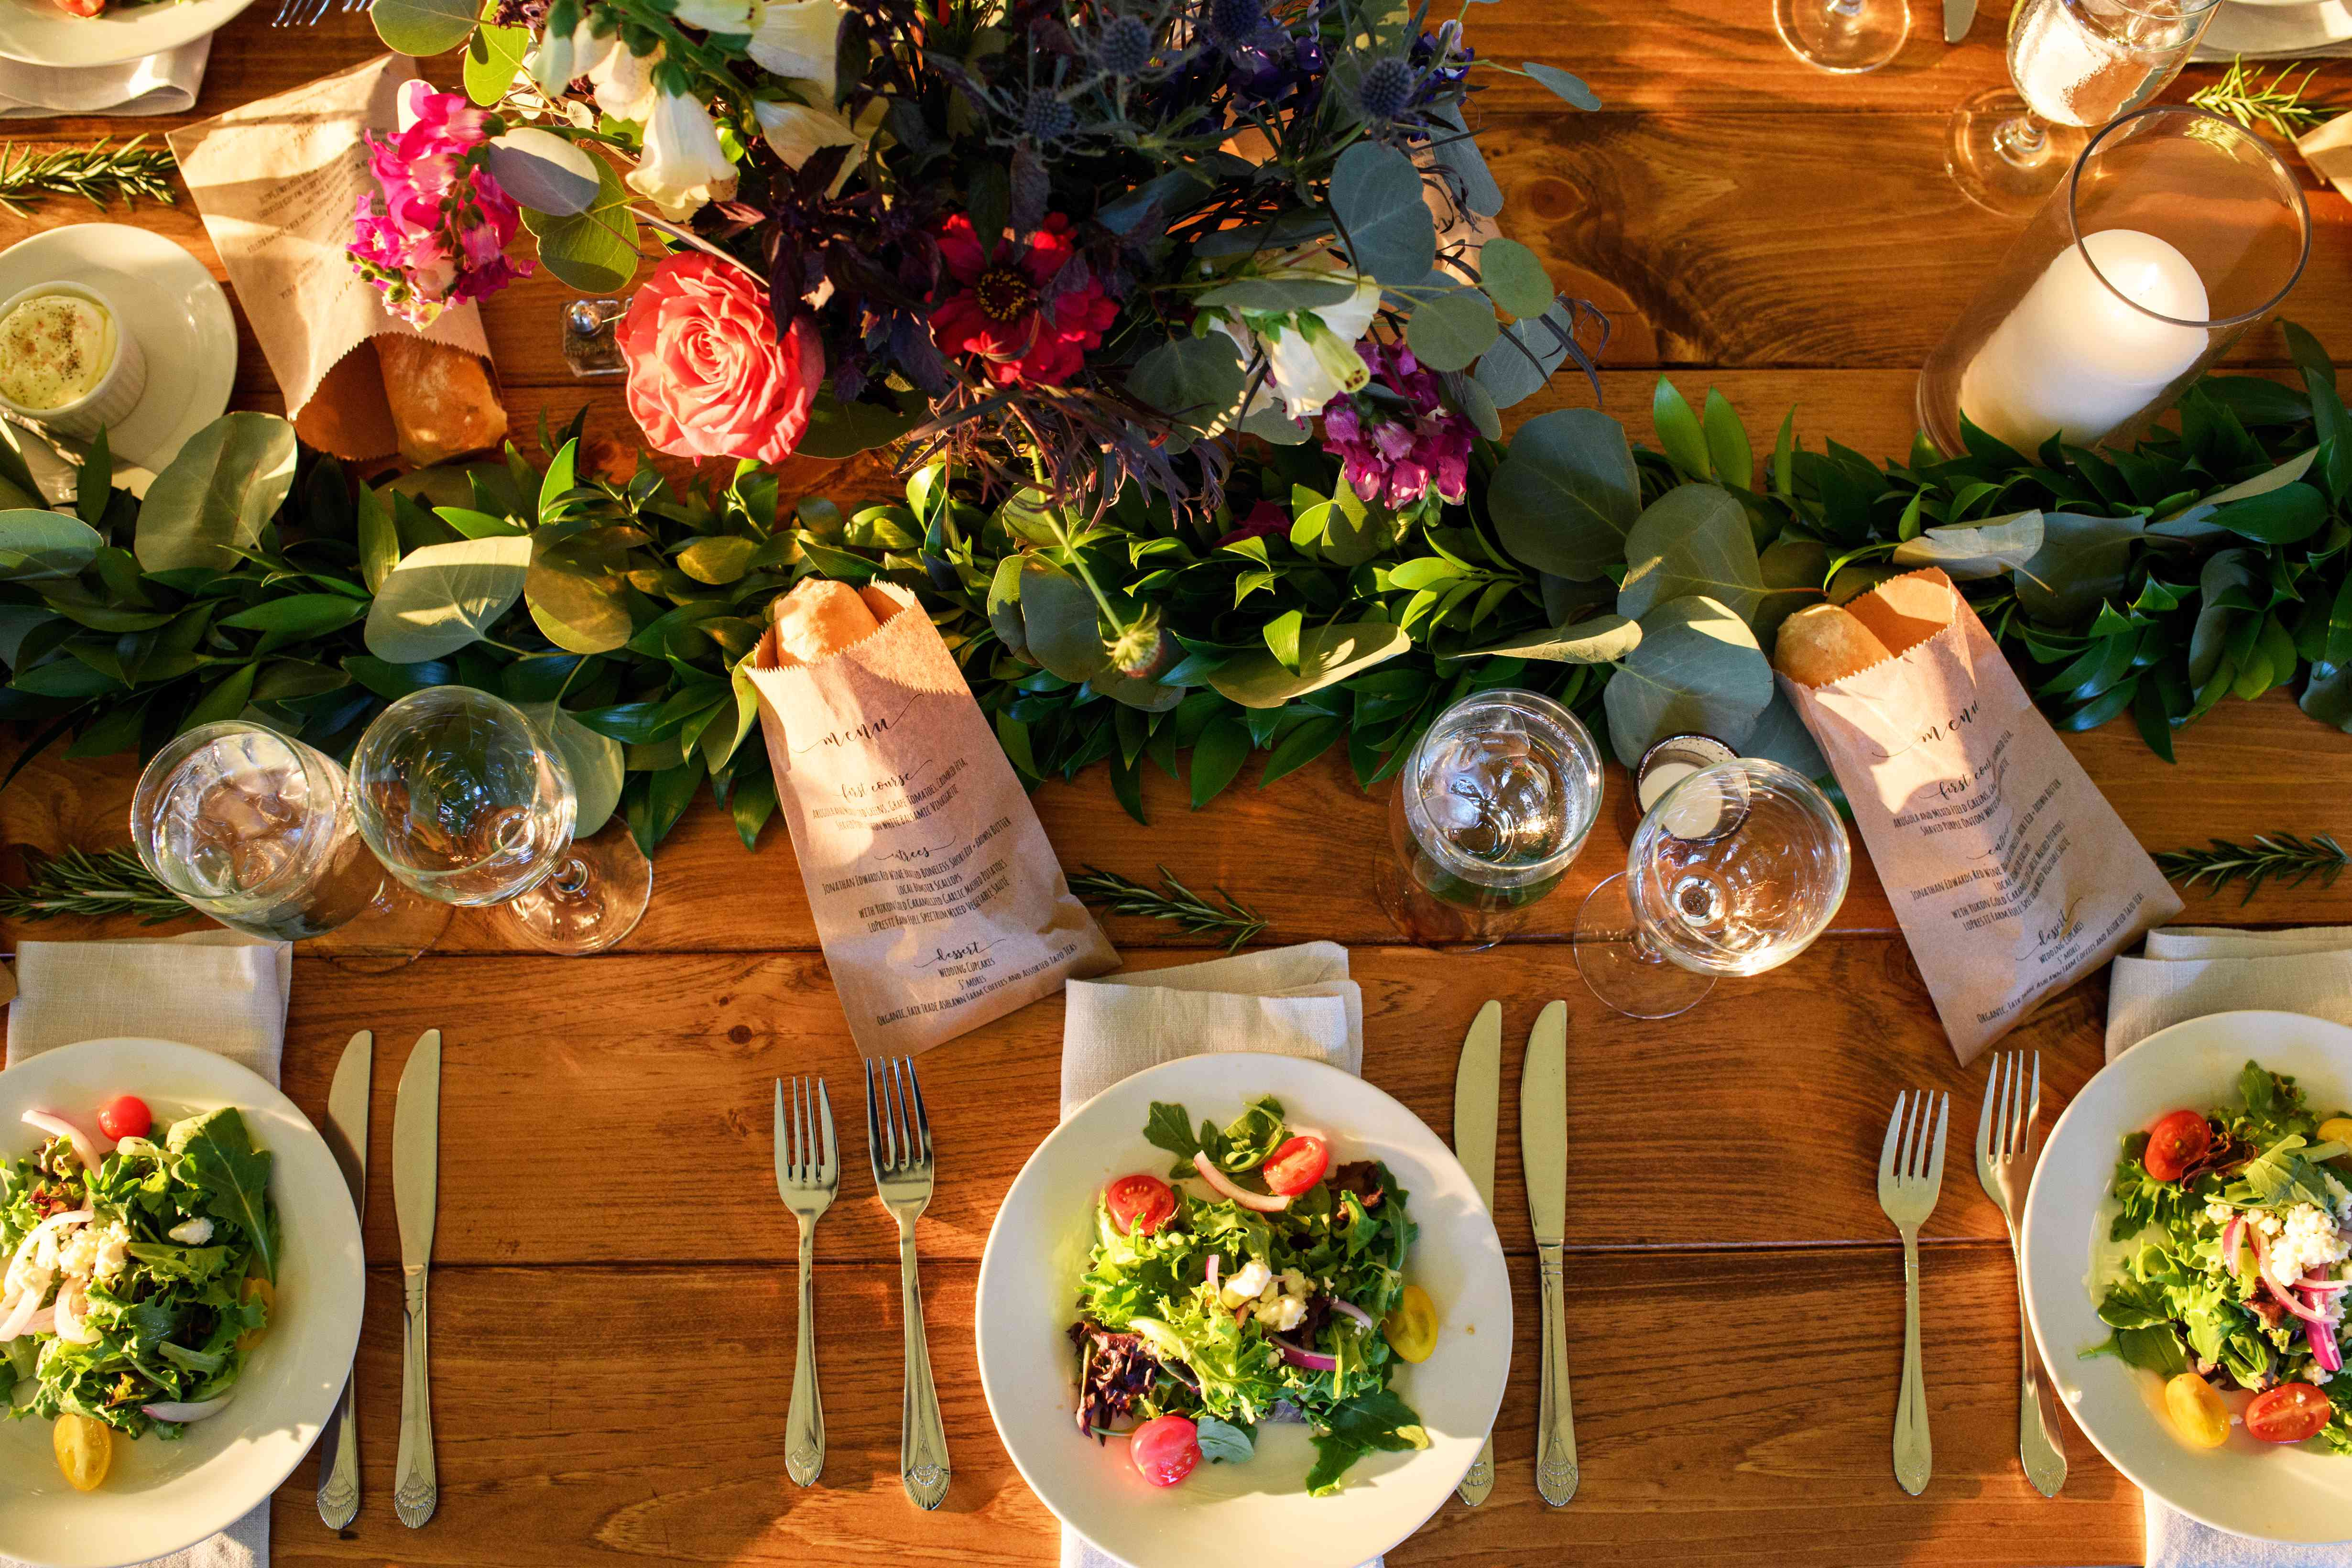 A table with food and wine